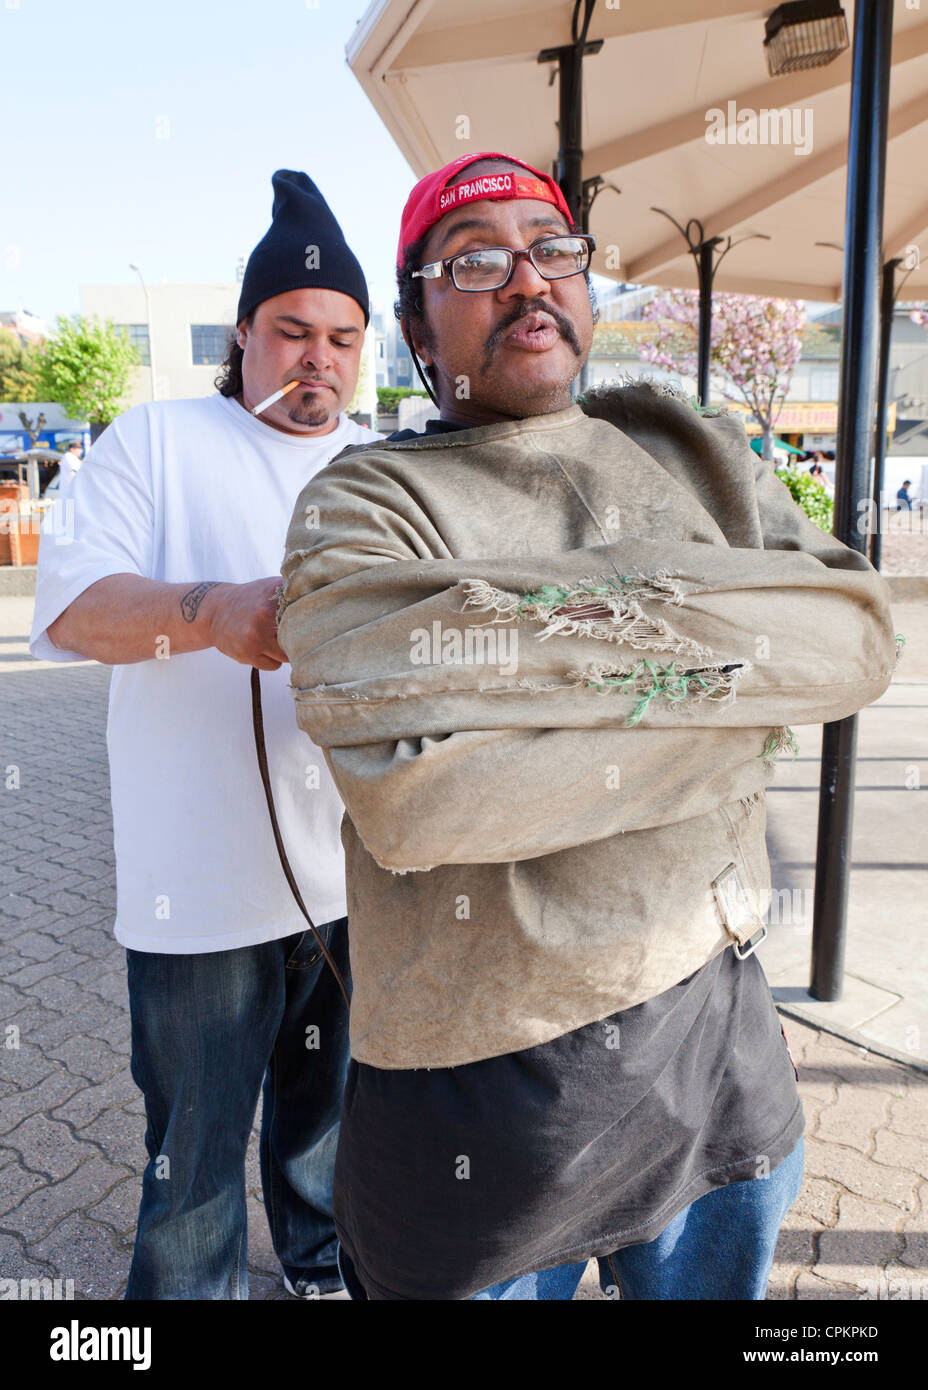 A street escape artist getting tied up - San Francisco, California USA - Stock Image